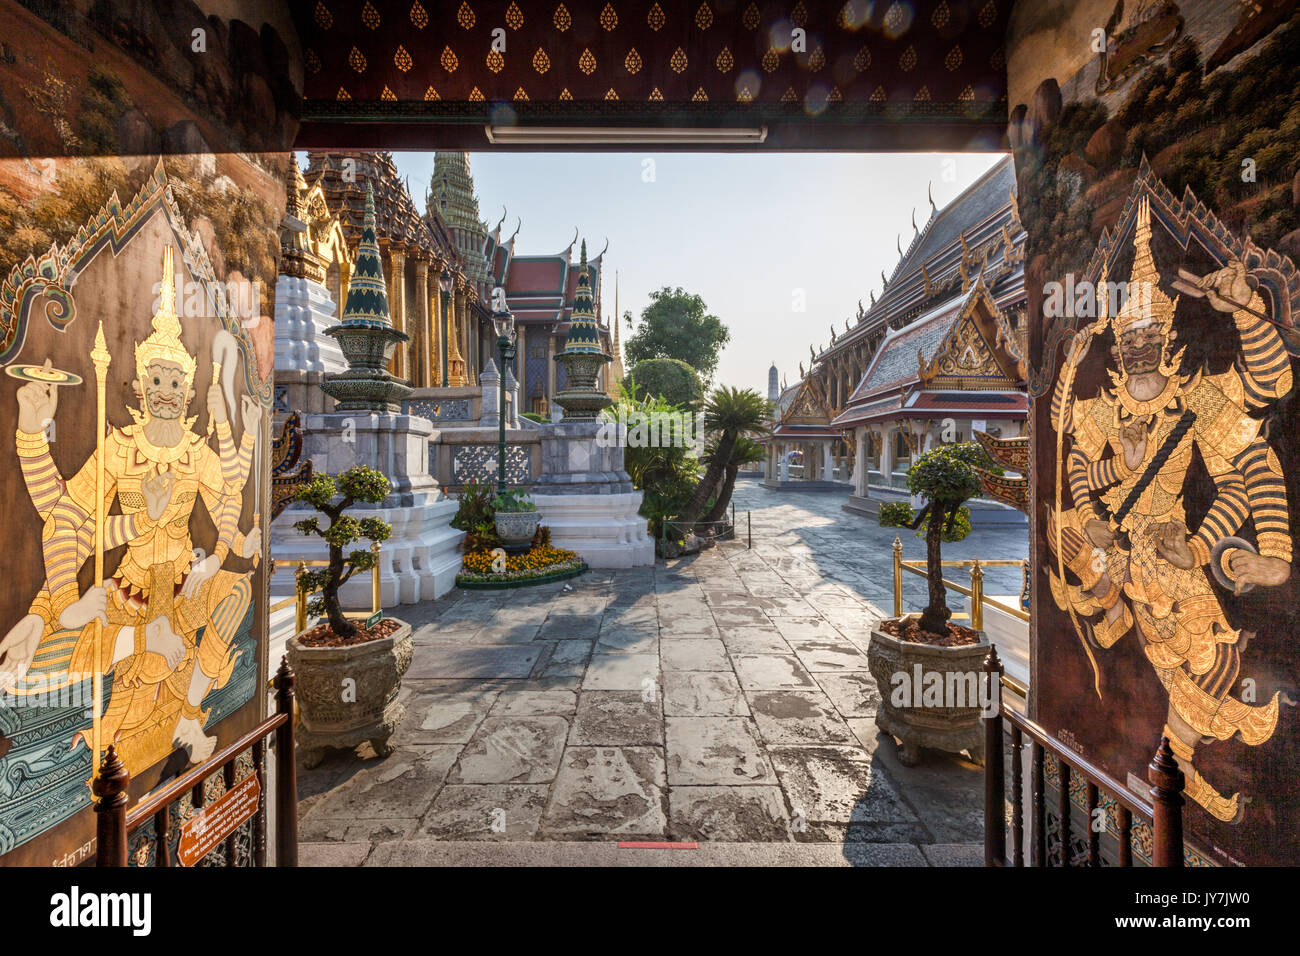 Ornate entrance door with gold decoration at Wat Phra Kaew Temple of the Emerald Buddha inside the Grand Palace, Bangkok, Thailand - Stock Image